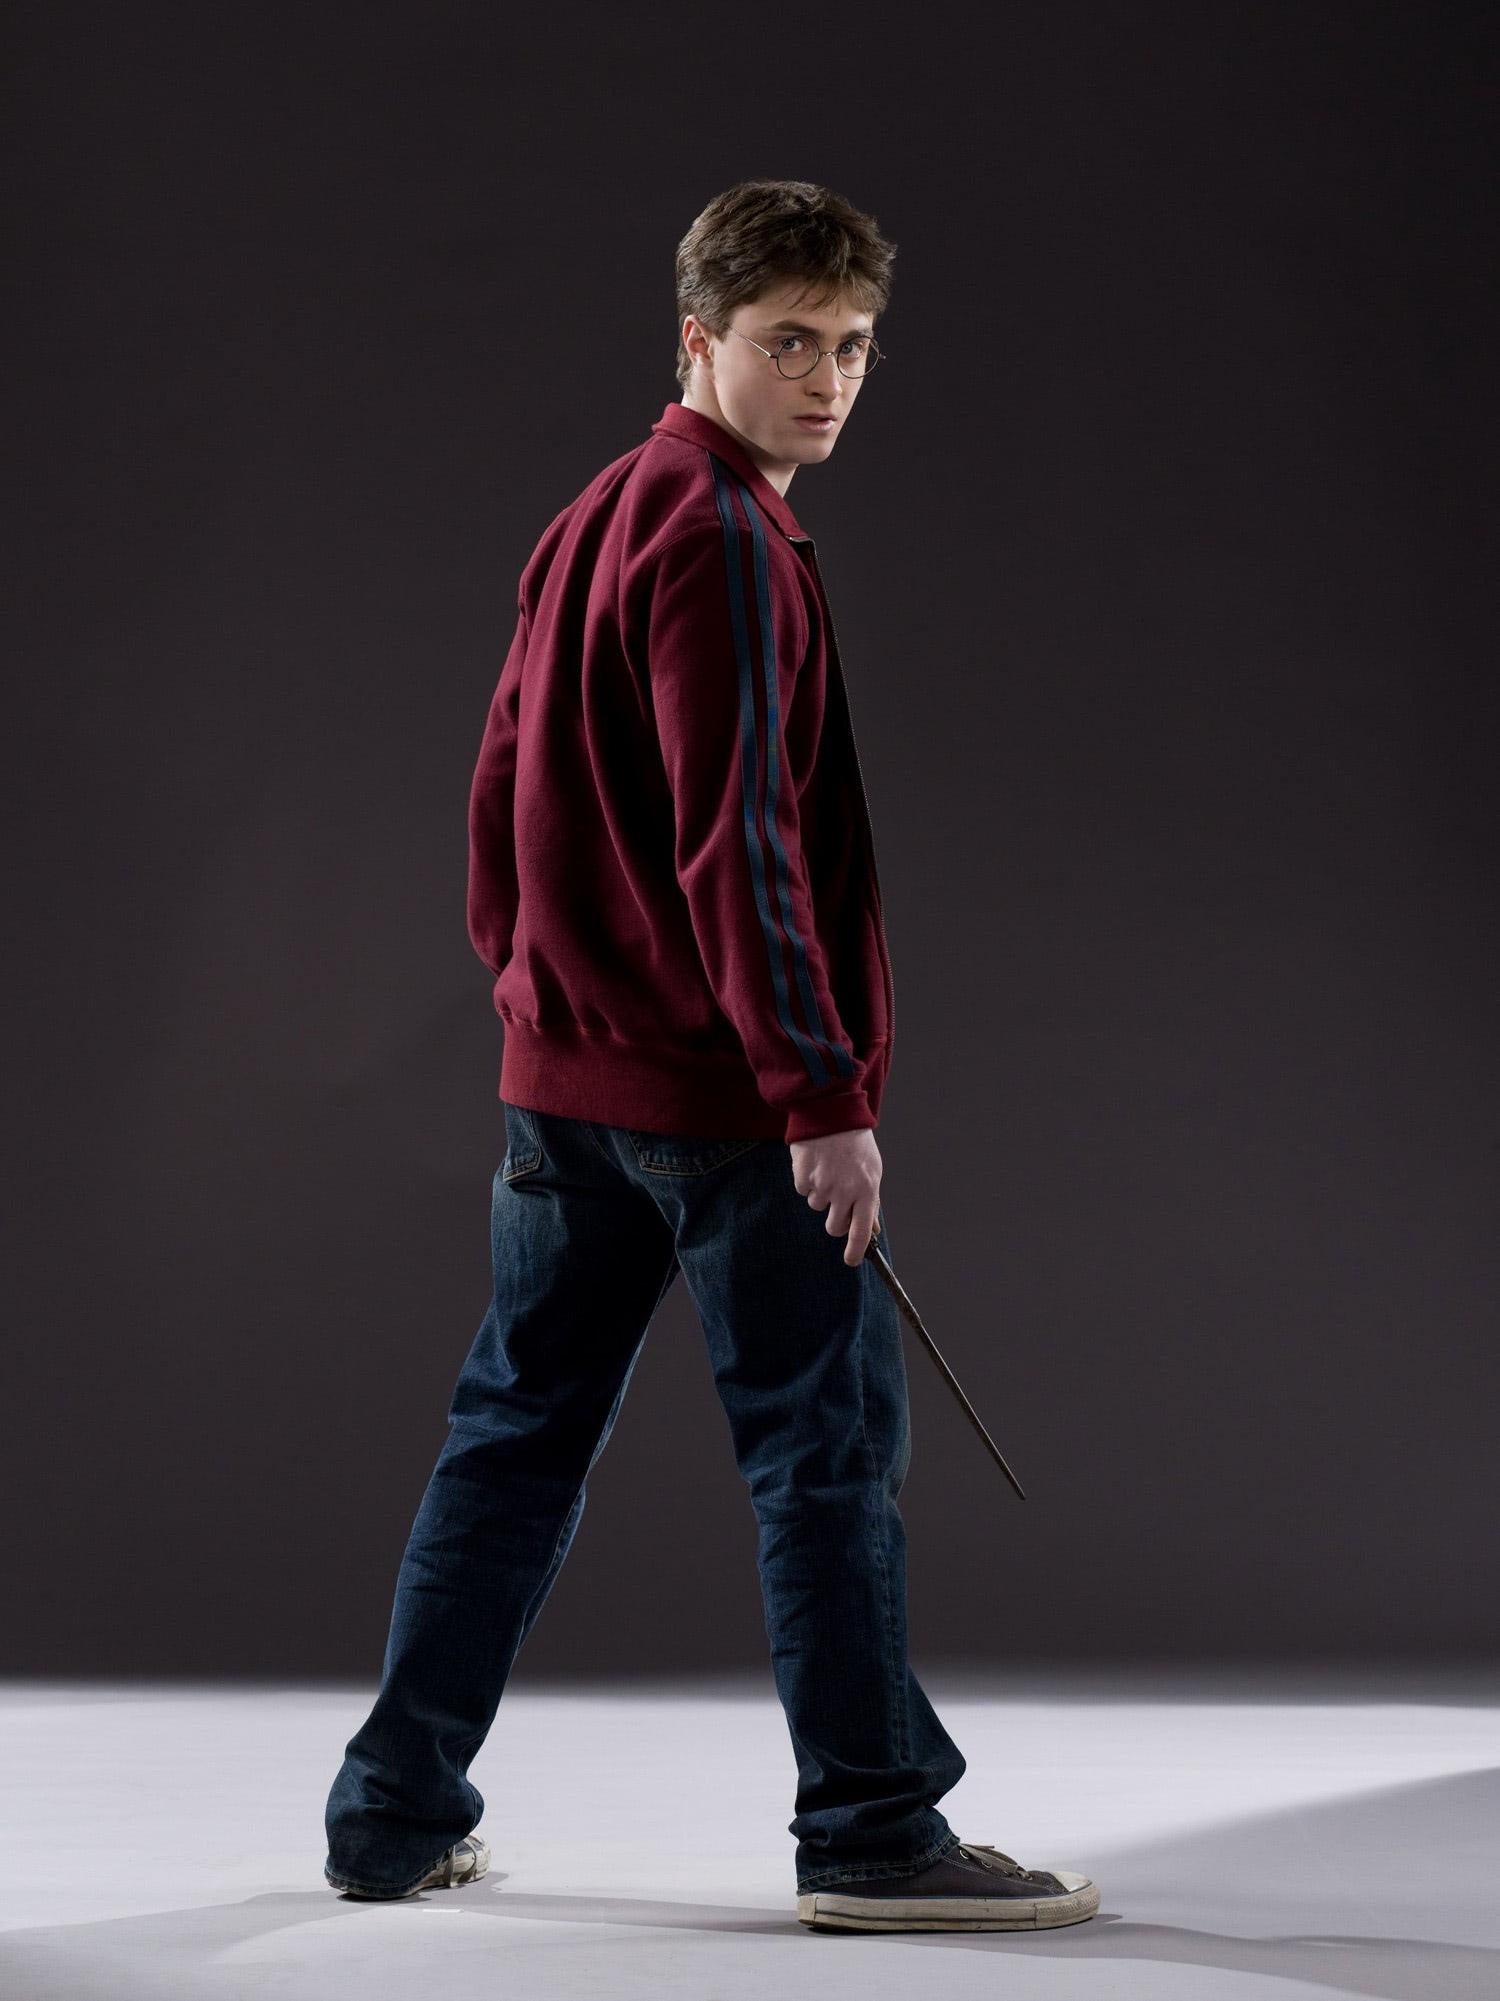 HBPf-Promo FullLength HarryPotterWithWand.jpg